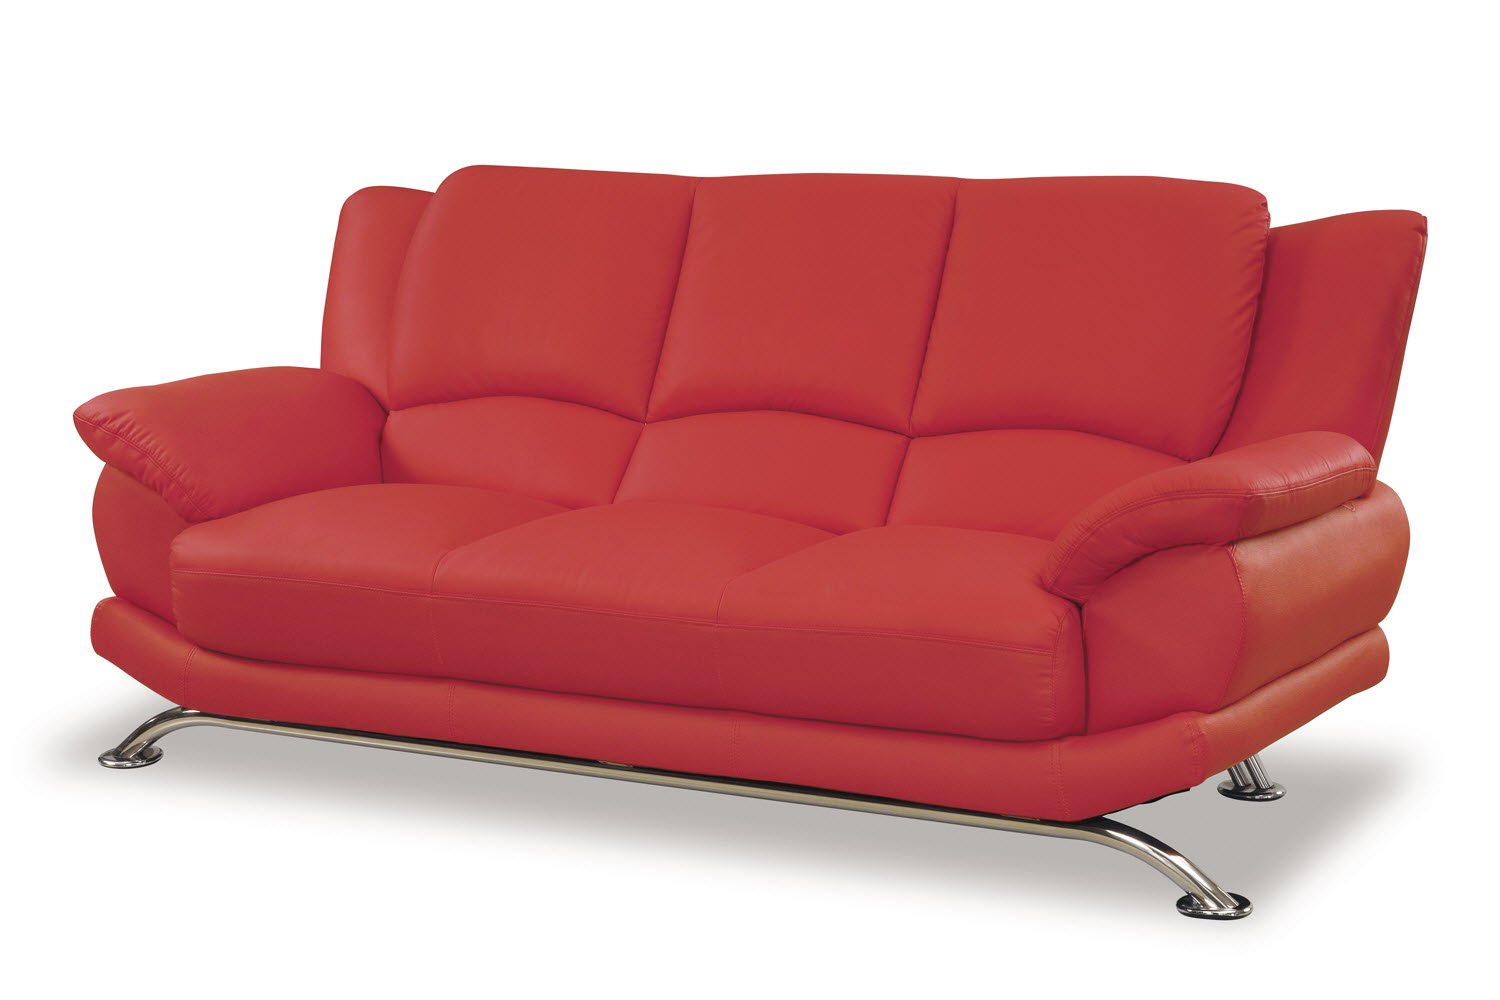 Global Furniture Rogers Collection Bonded Leather Matching Sofa 9908 Red With Chrome Legs